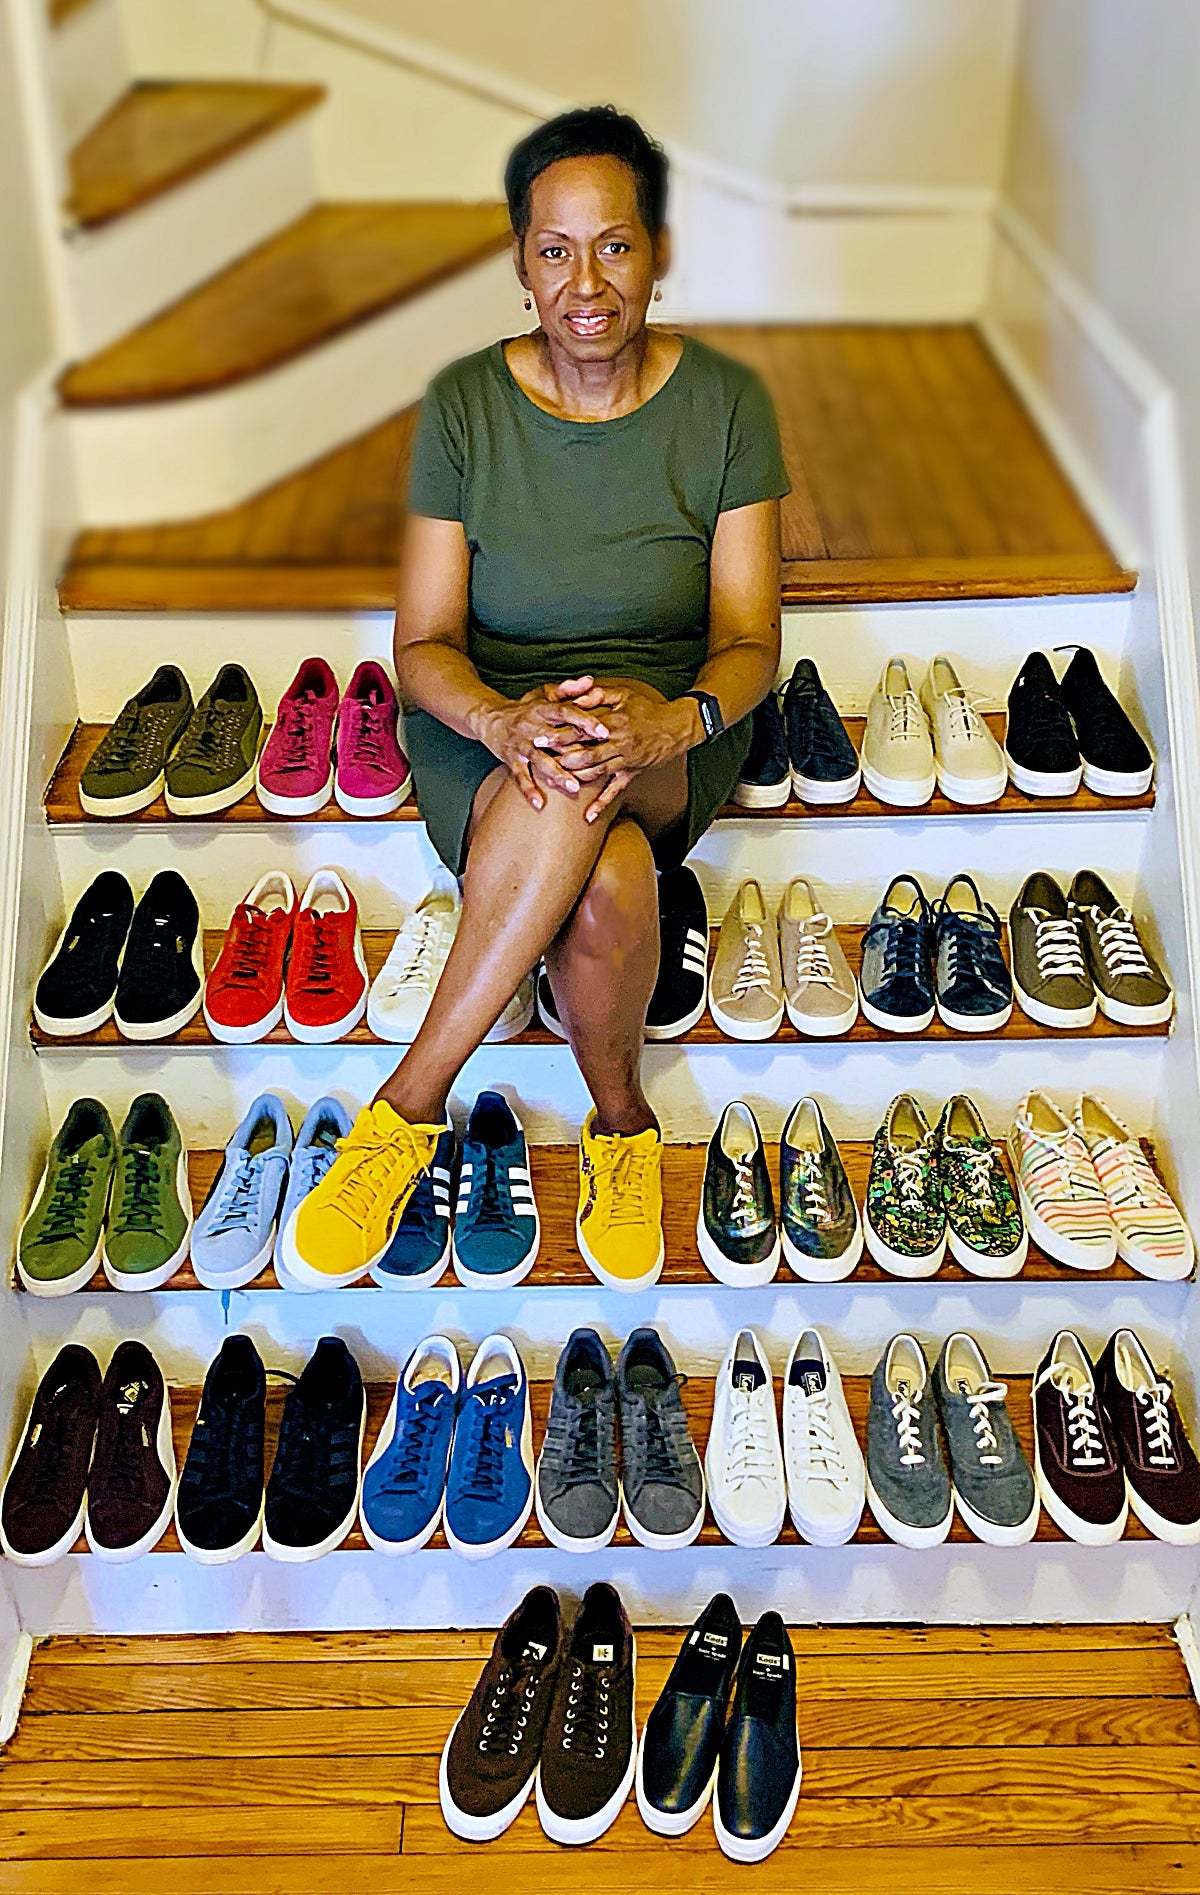 Juliet's Colorful Sneaker Collection